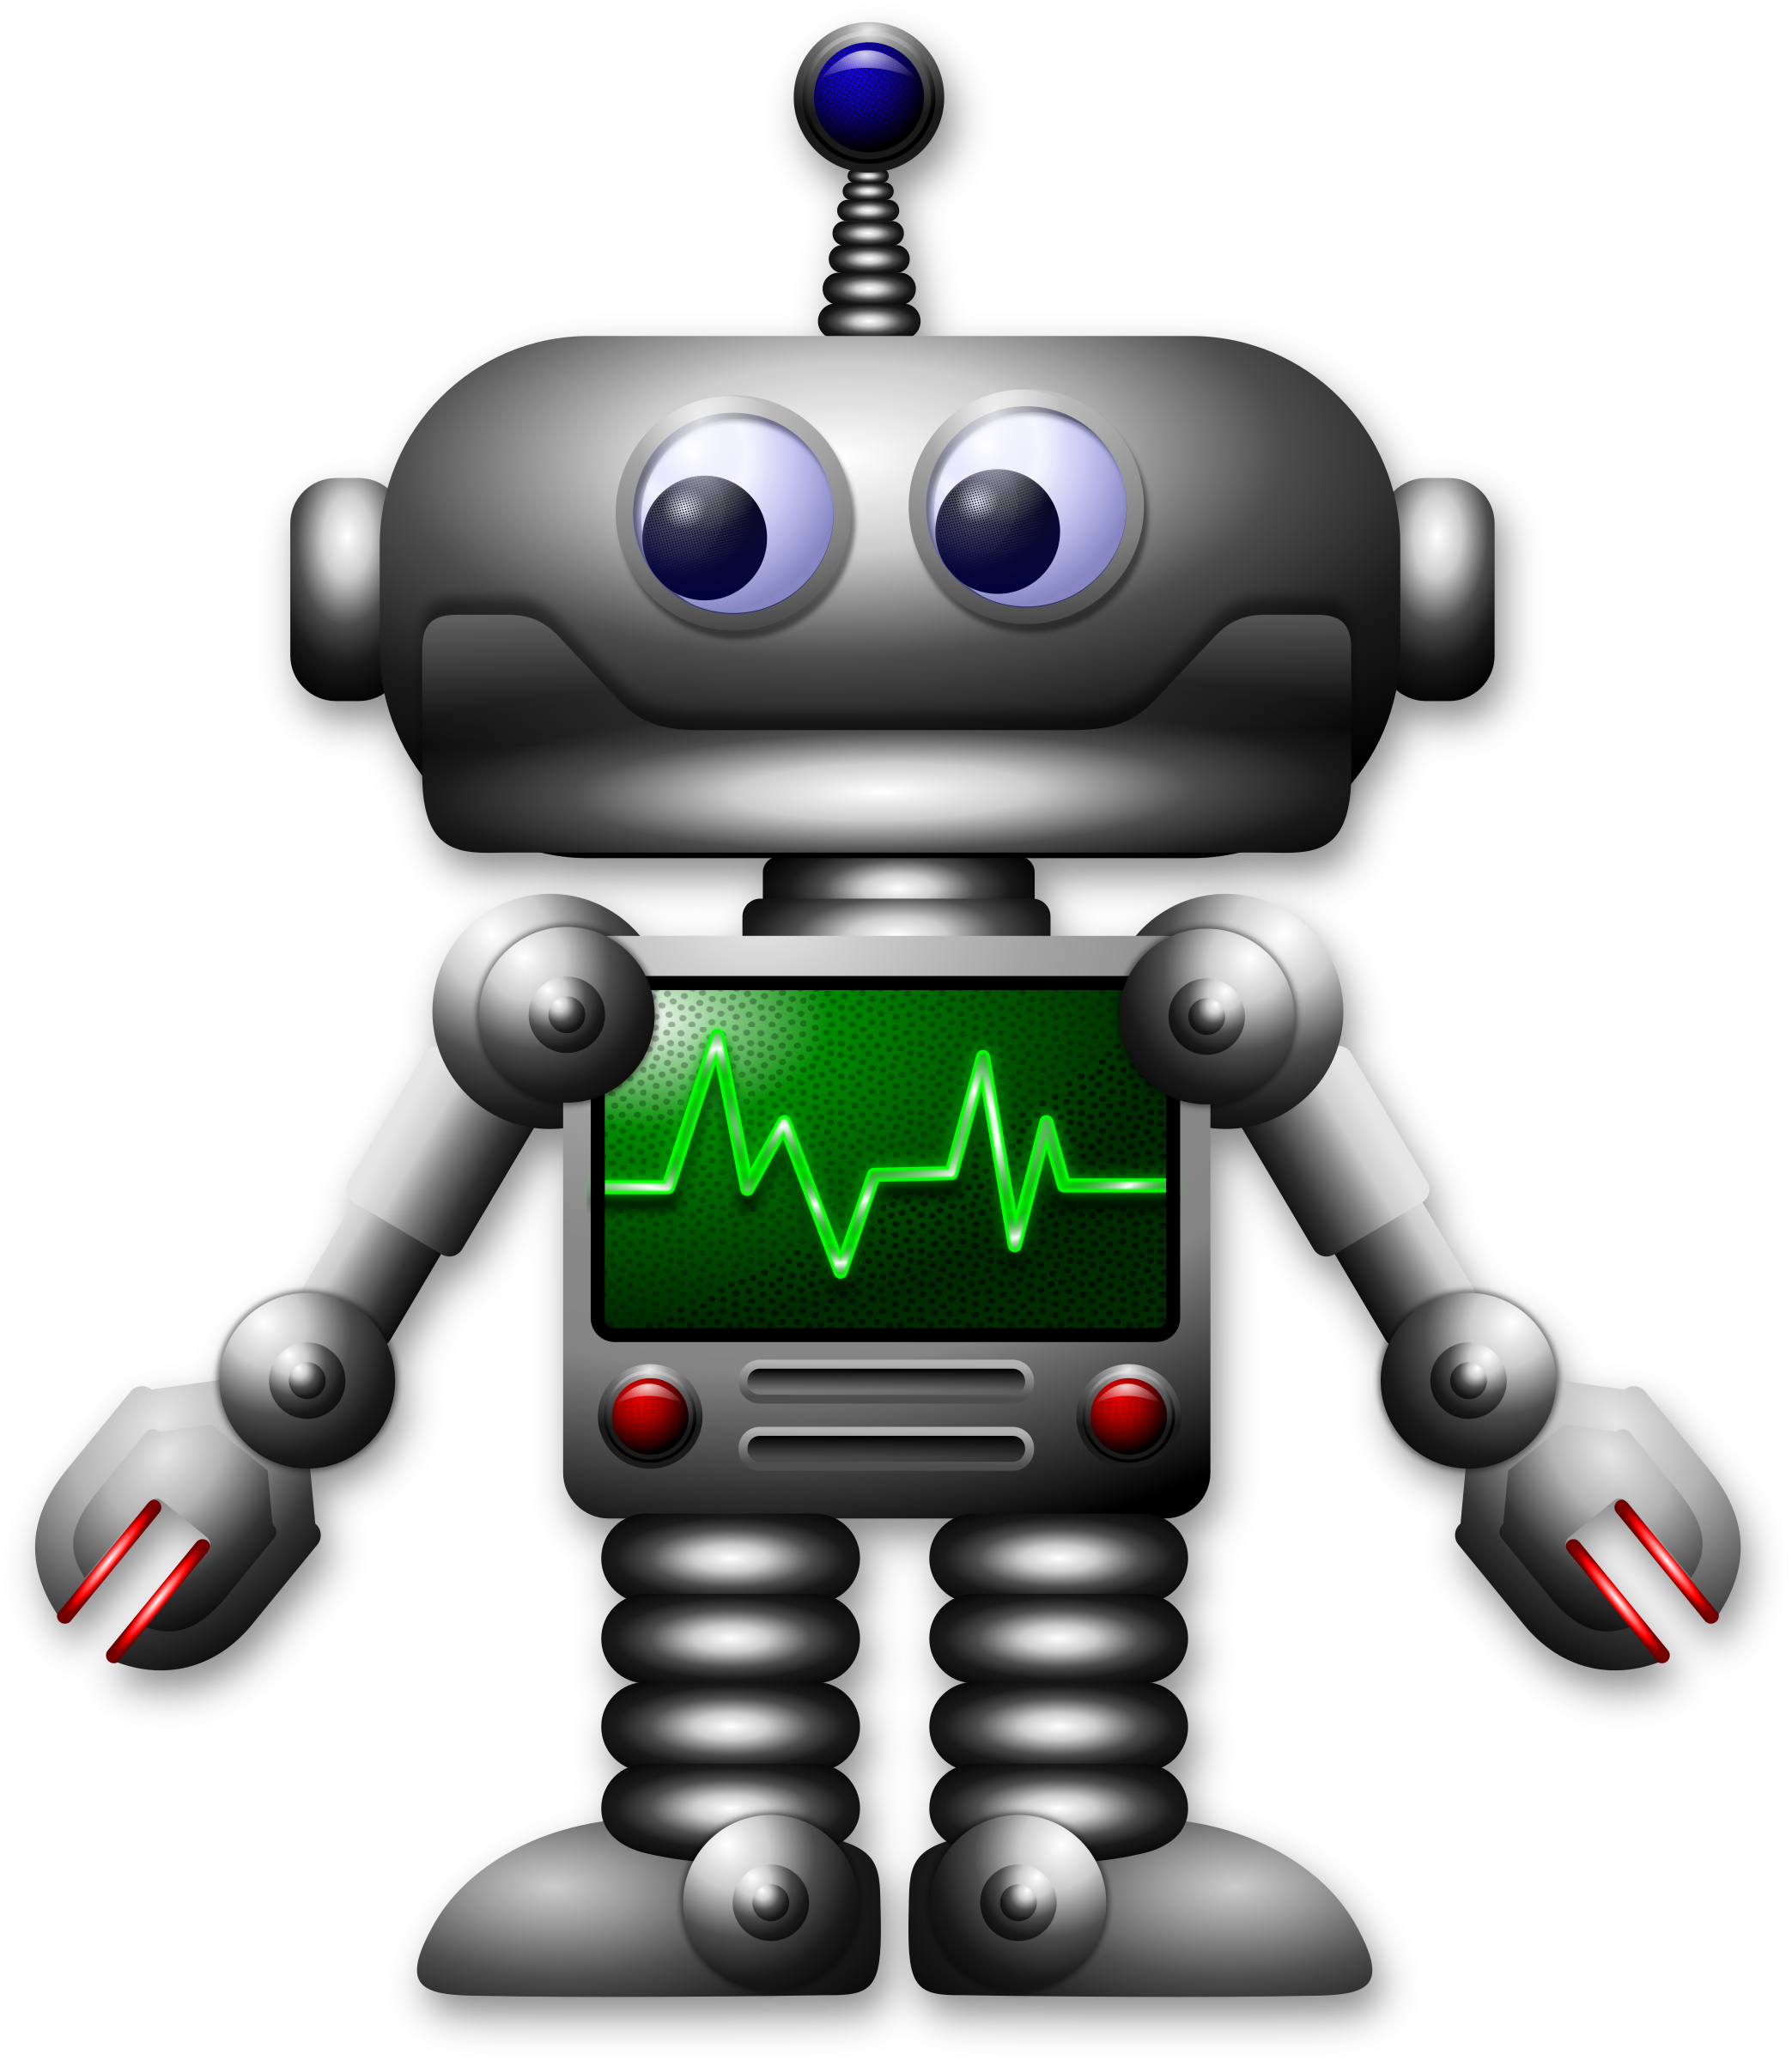 Toy clipart robot, Toy robot Transparent FREE for download ...